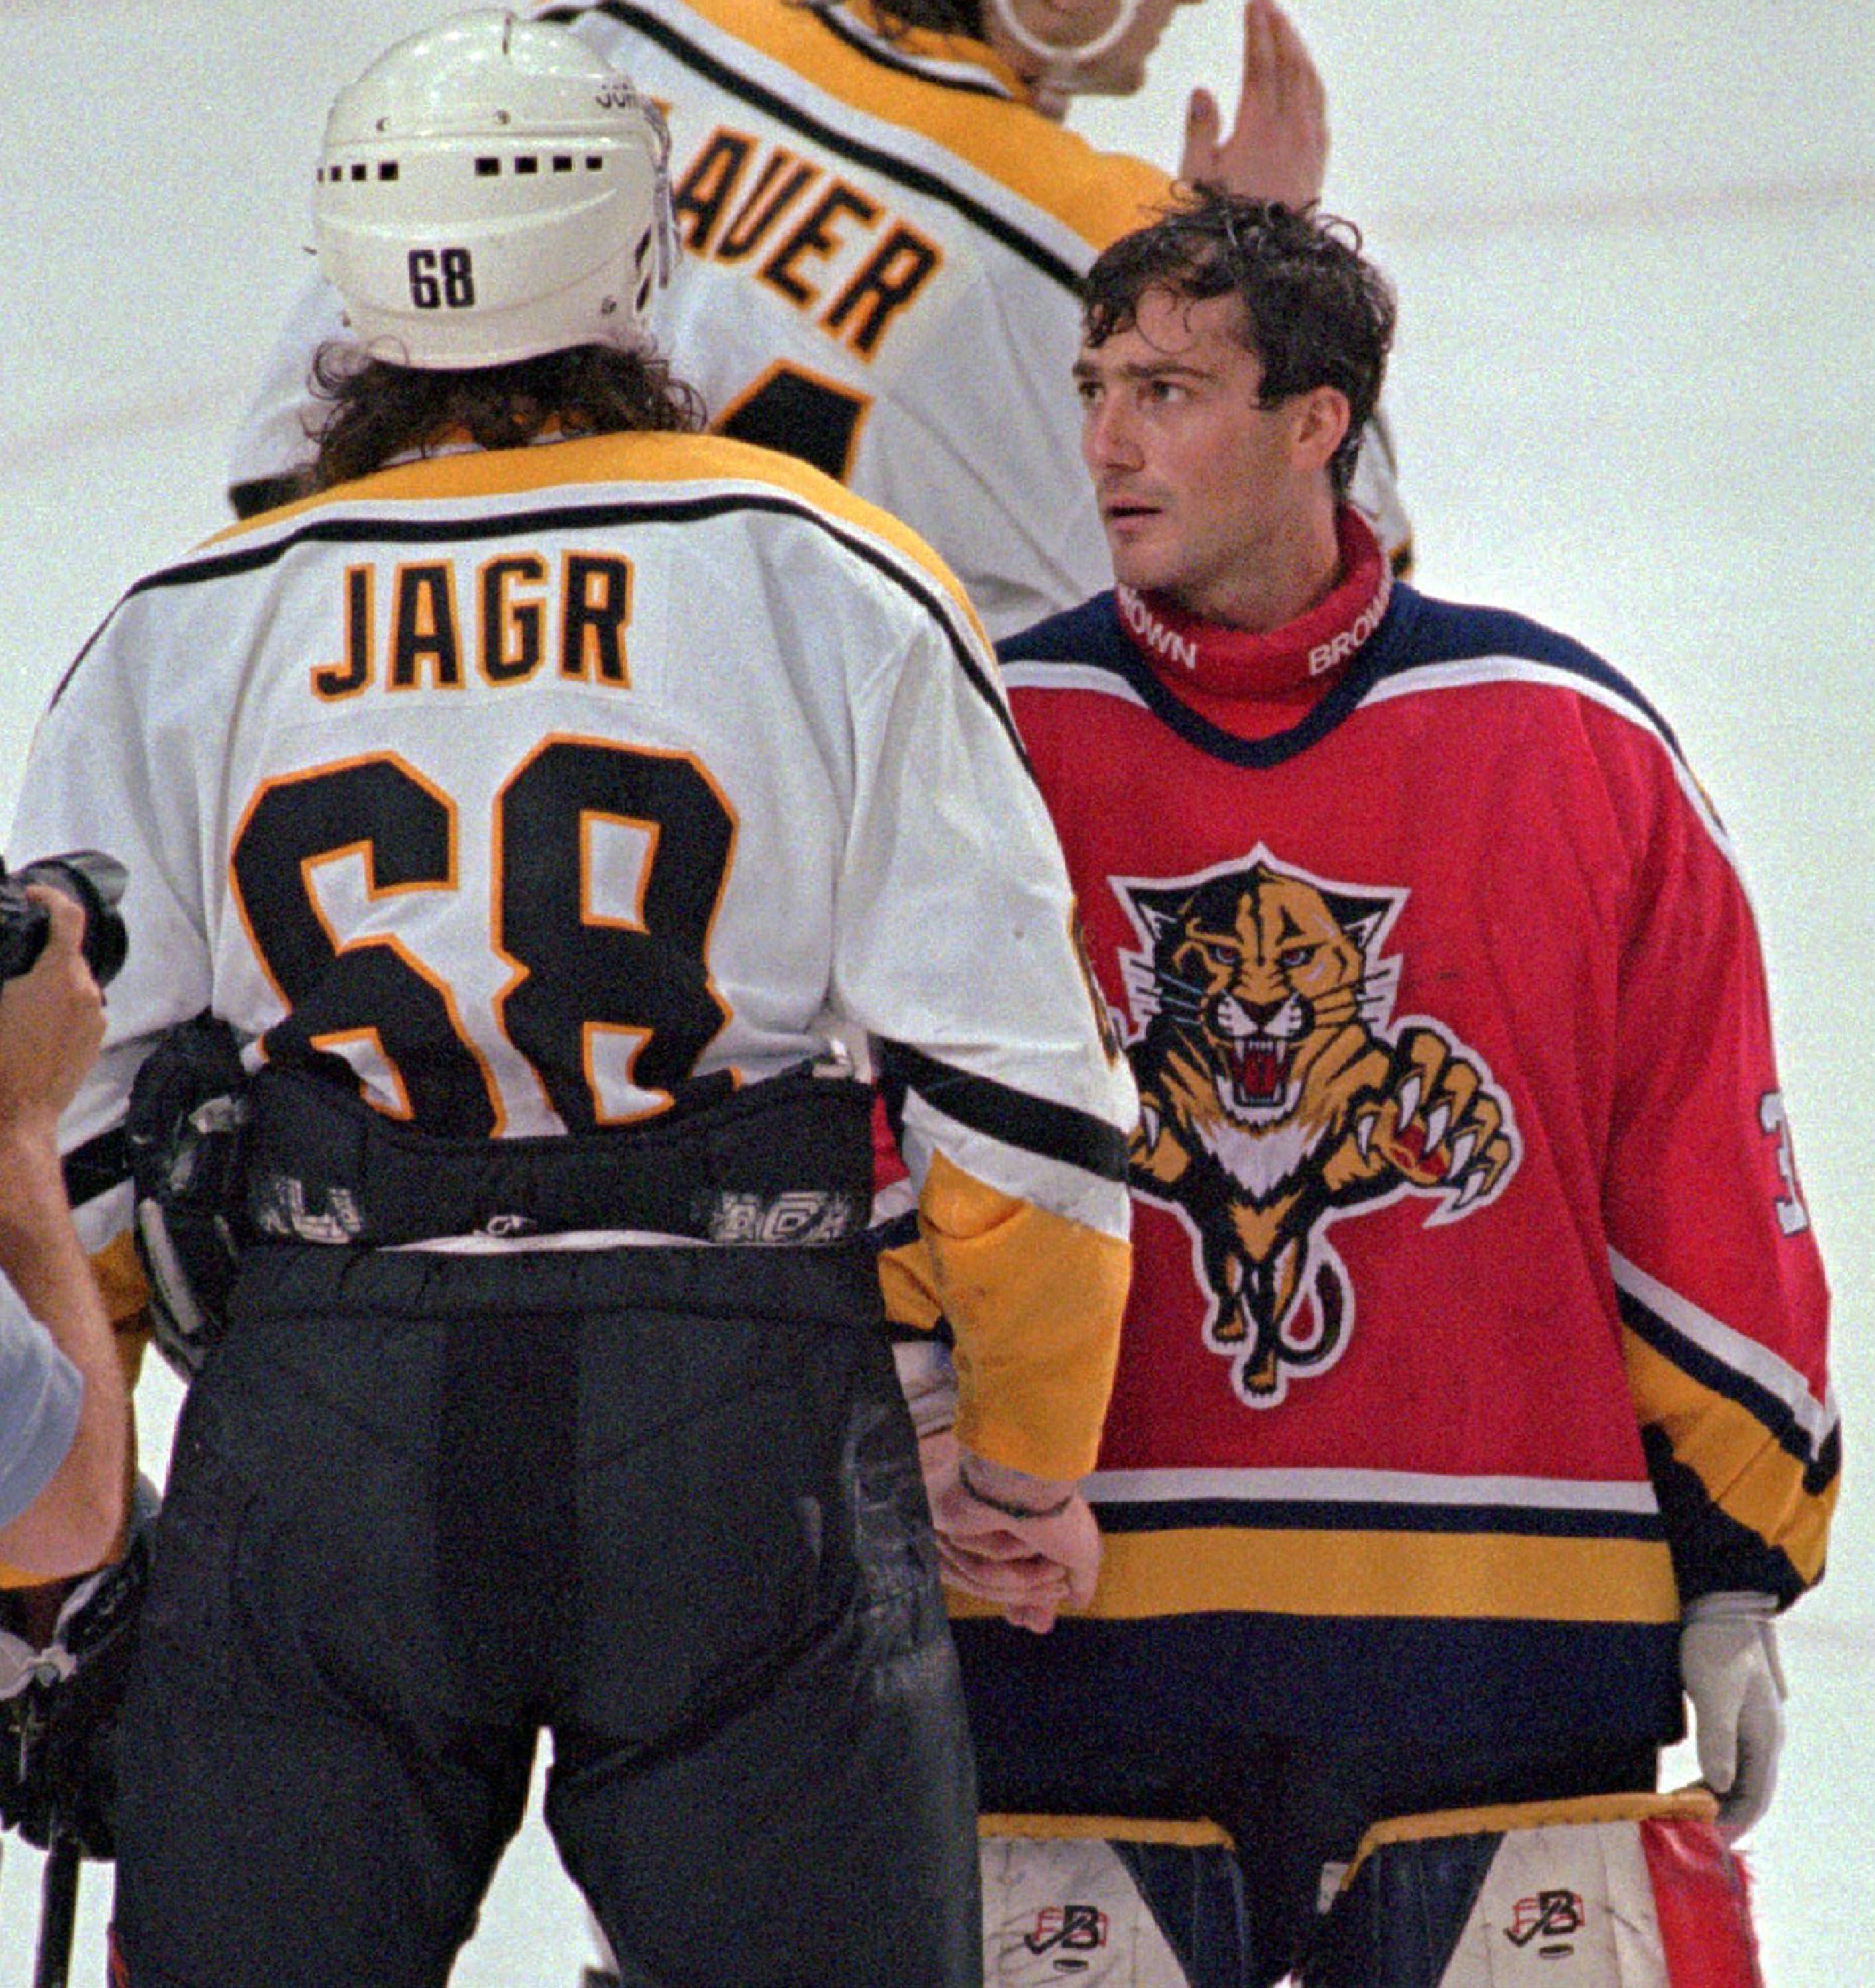 Florida Panthers goalie John Vanbiesbrouck, right, shakes hands with Pittsburgh Penguins Jaromir Jagr after game 7 of their Eastern Conference playoff series in Pittsburgh, Saturday June 1, 1996. The Panthers defeated the Penguins 3-1 and will meet the <a href=